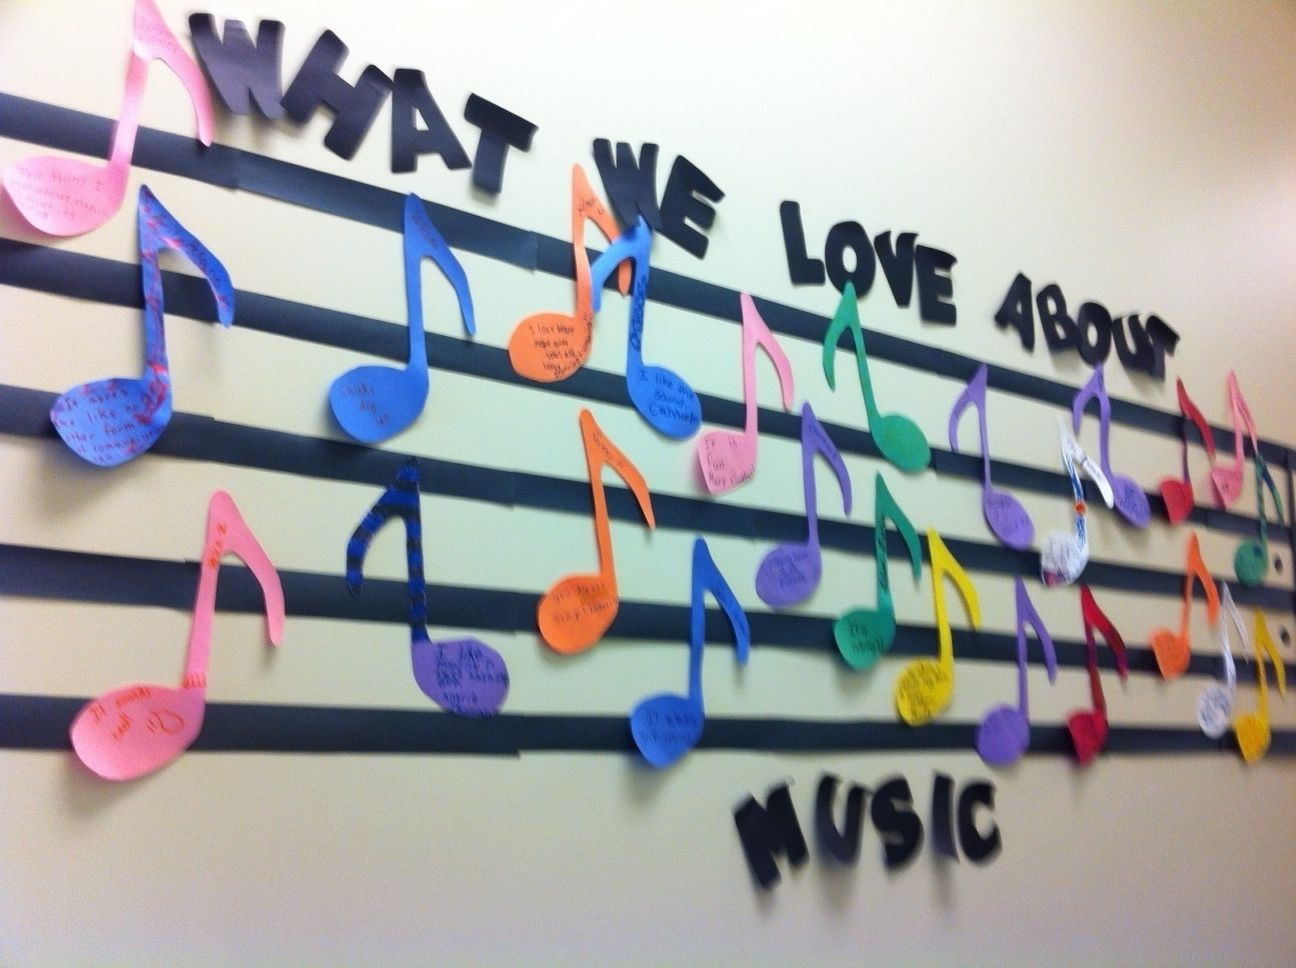 Students wrote different things they love about music on construction paper music notes and we put them on a staff on the wall!